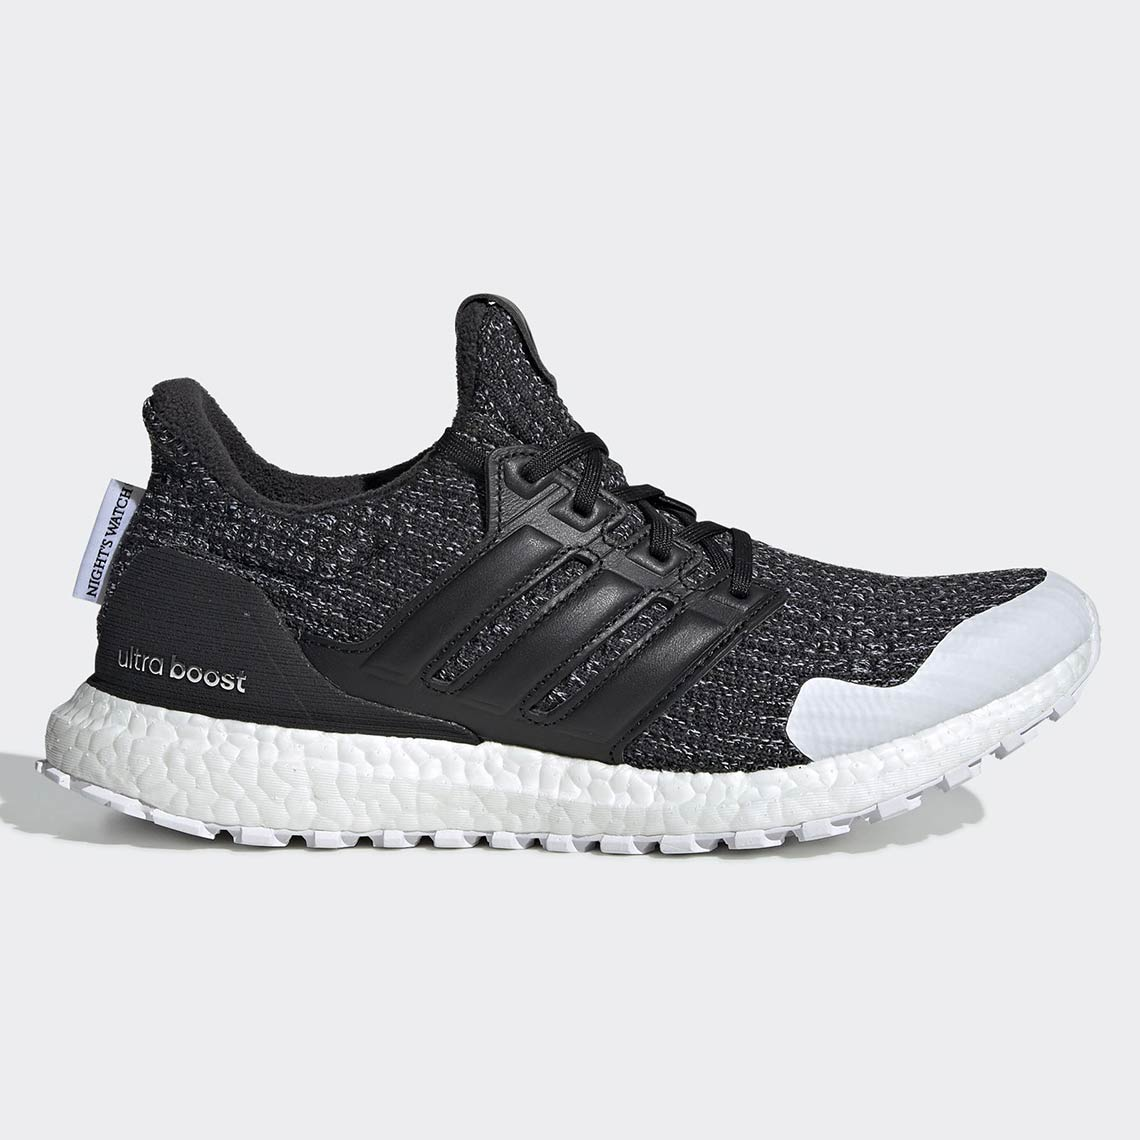 game-of-thrones-adidas-ultra-boost-nights-watch-EE3707